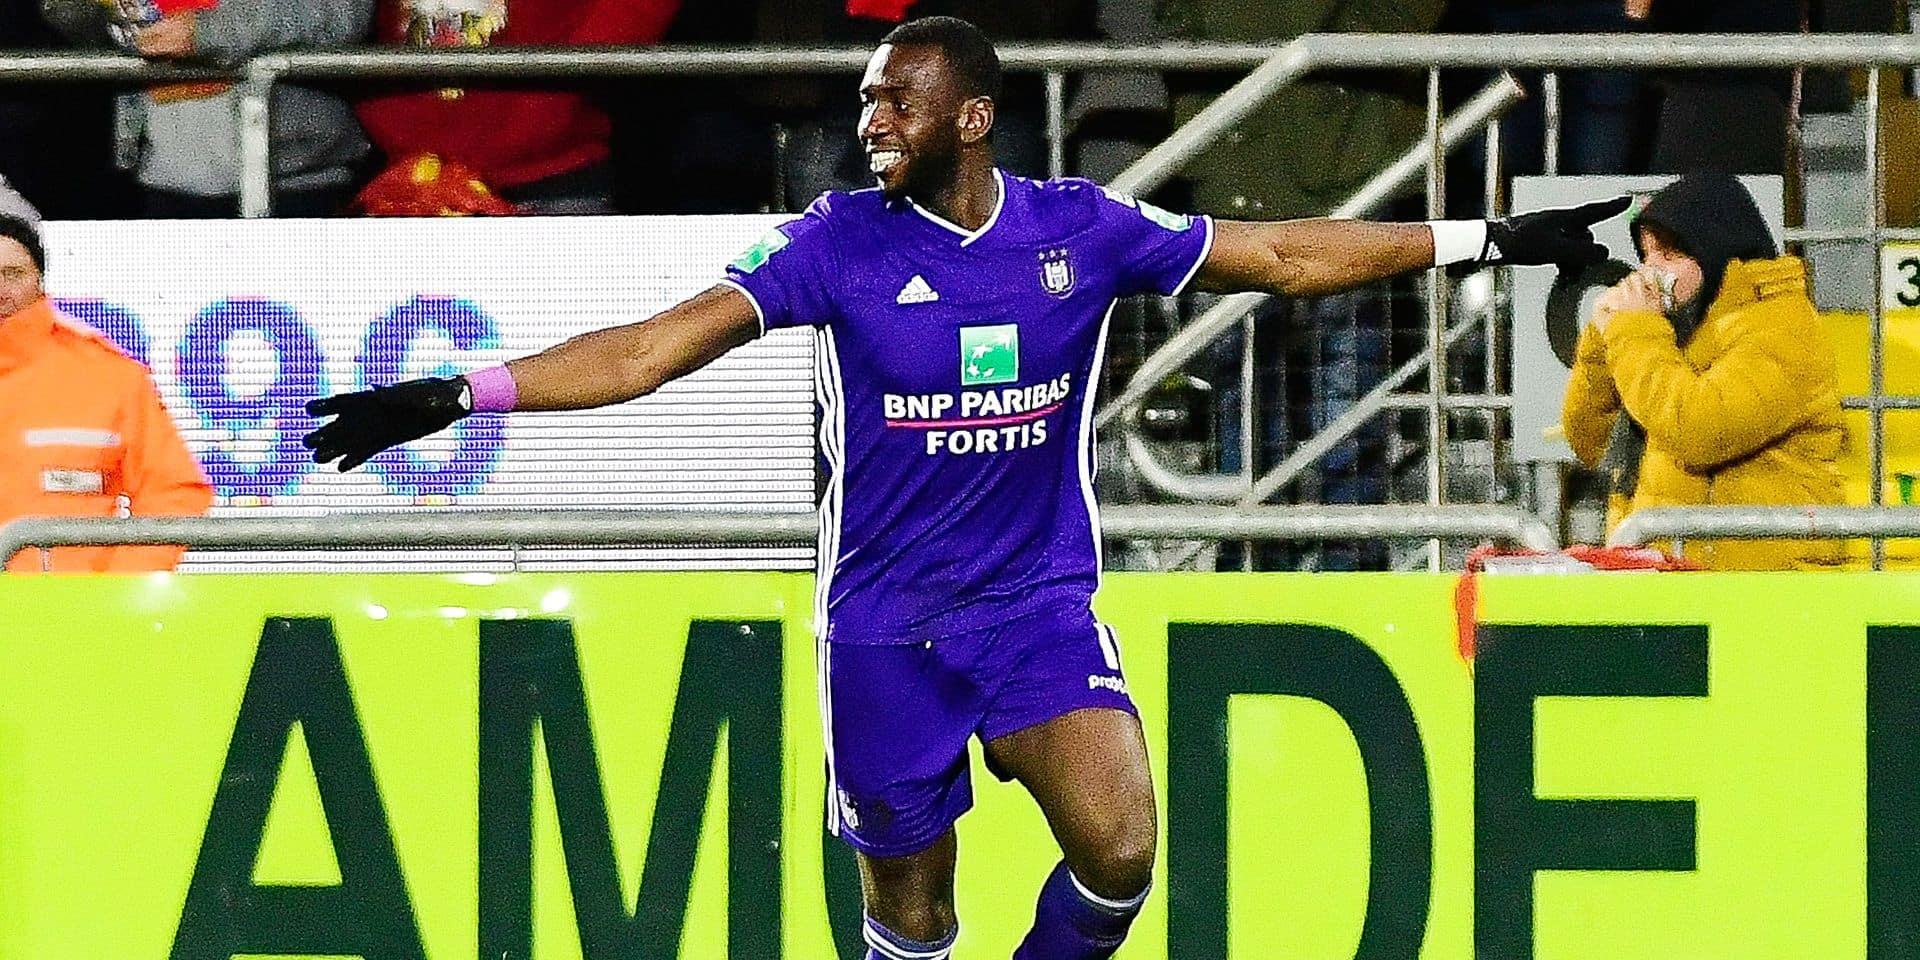 Anderlecht's Yannick Yala Bolasie celebrates after scoring during a soccer game between KV Oostende and RSCA Anderlecht, Sunday 17 March 2019 in Oostende, on the 30th day of the 'Jupiler Pro League' Belgian soccer championship season 2018-2019. BELGA PHOTO LAURIE DIEFFEMBACQ